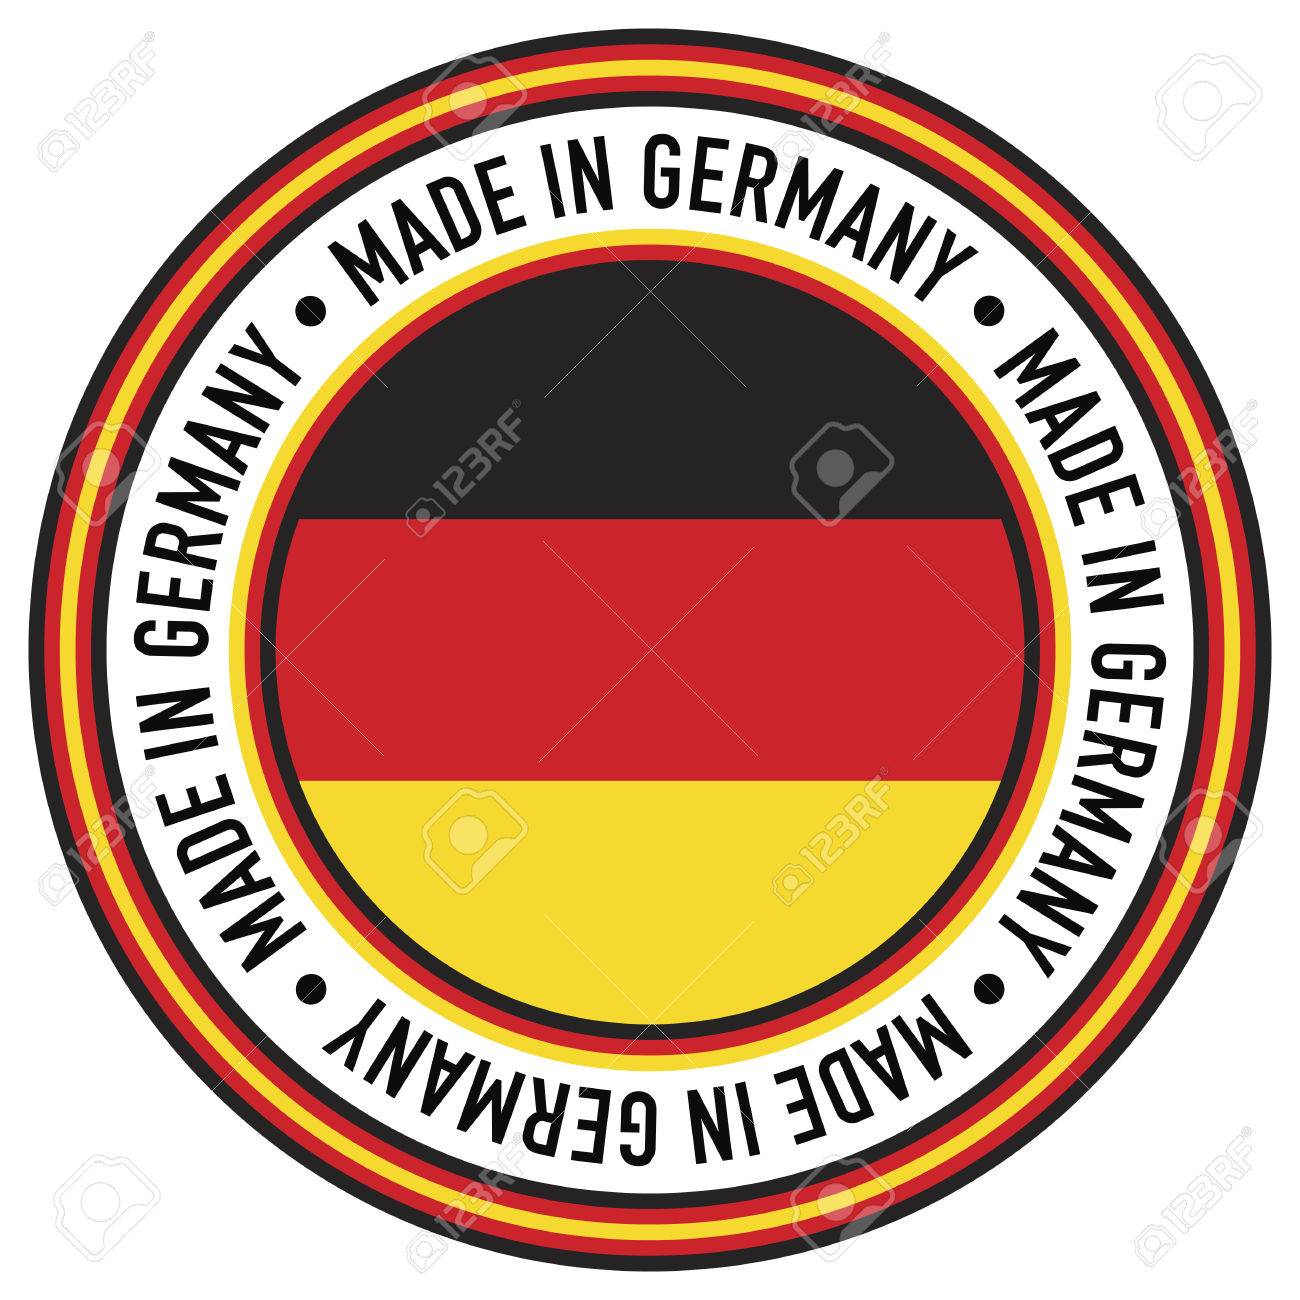 A Made in Germany rubber-stamp like circular decal. - 6820626